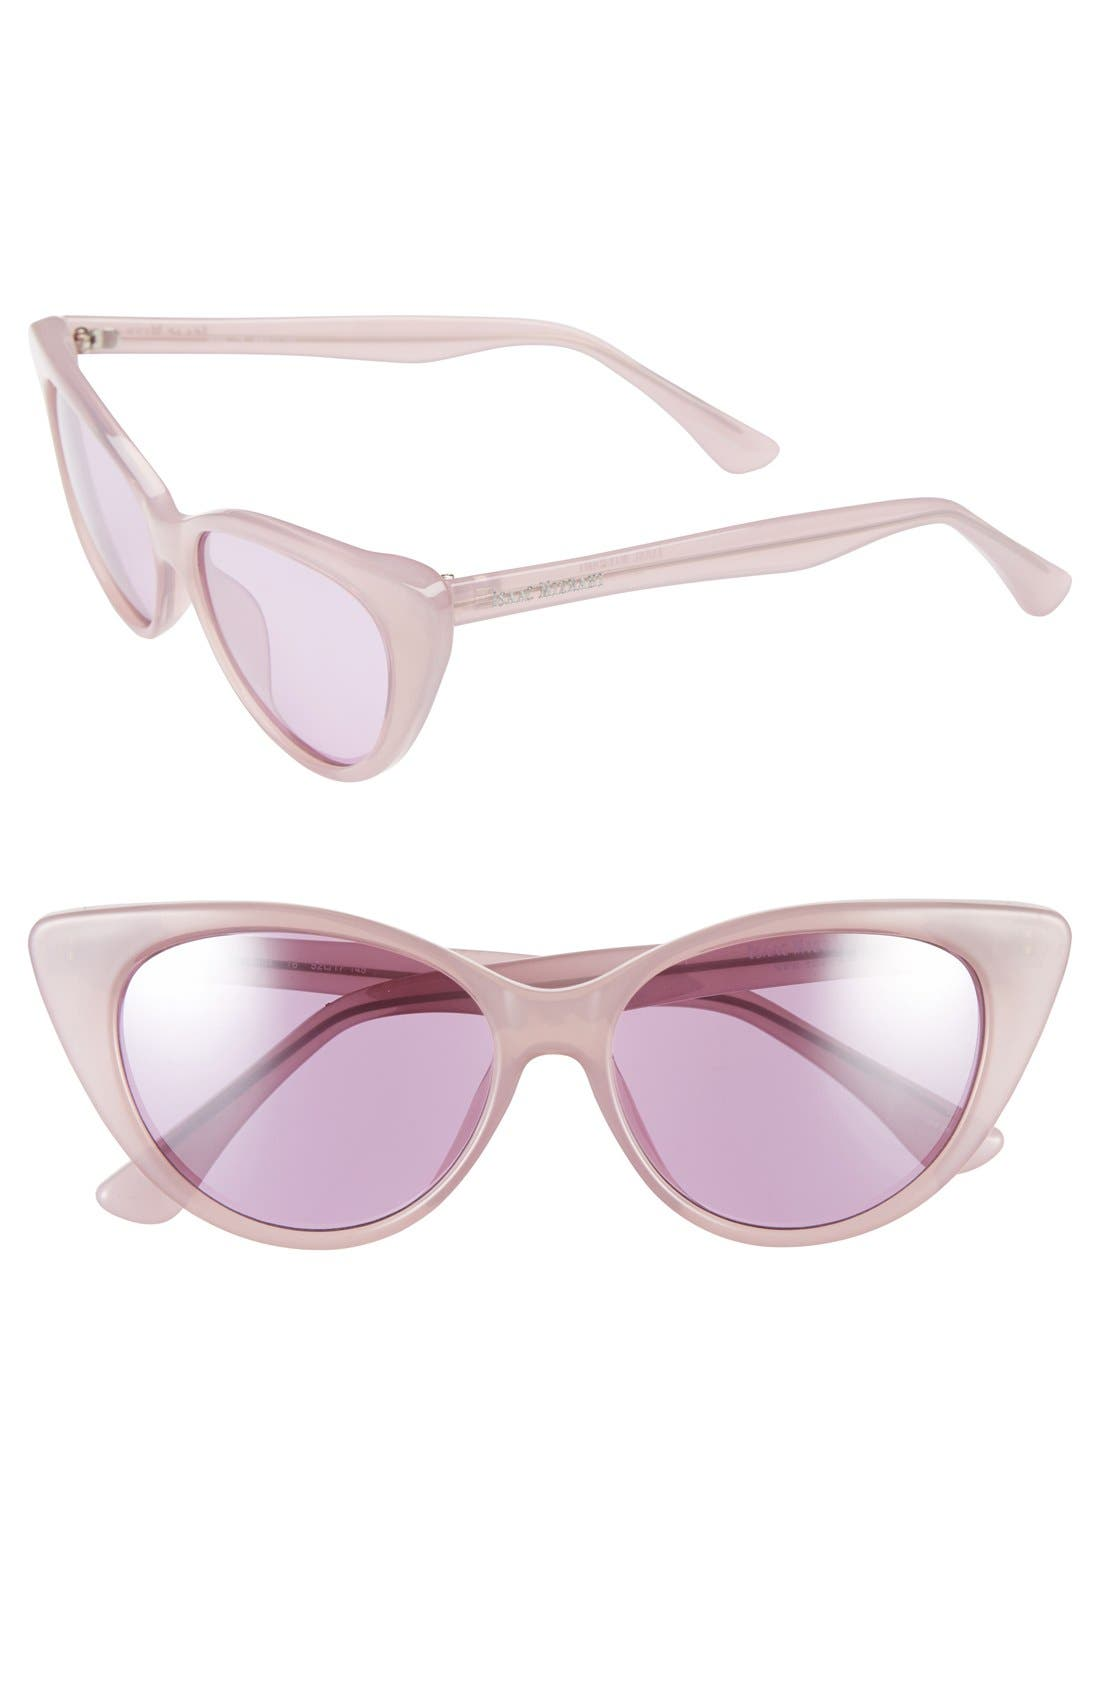 Main Image - Isaac Mizrahi New York 52mm Cat Eye Sunglasses